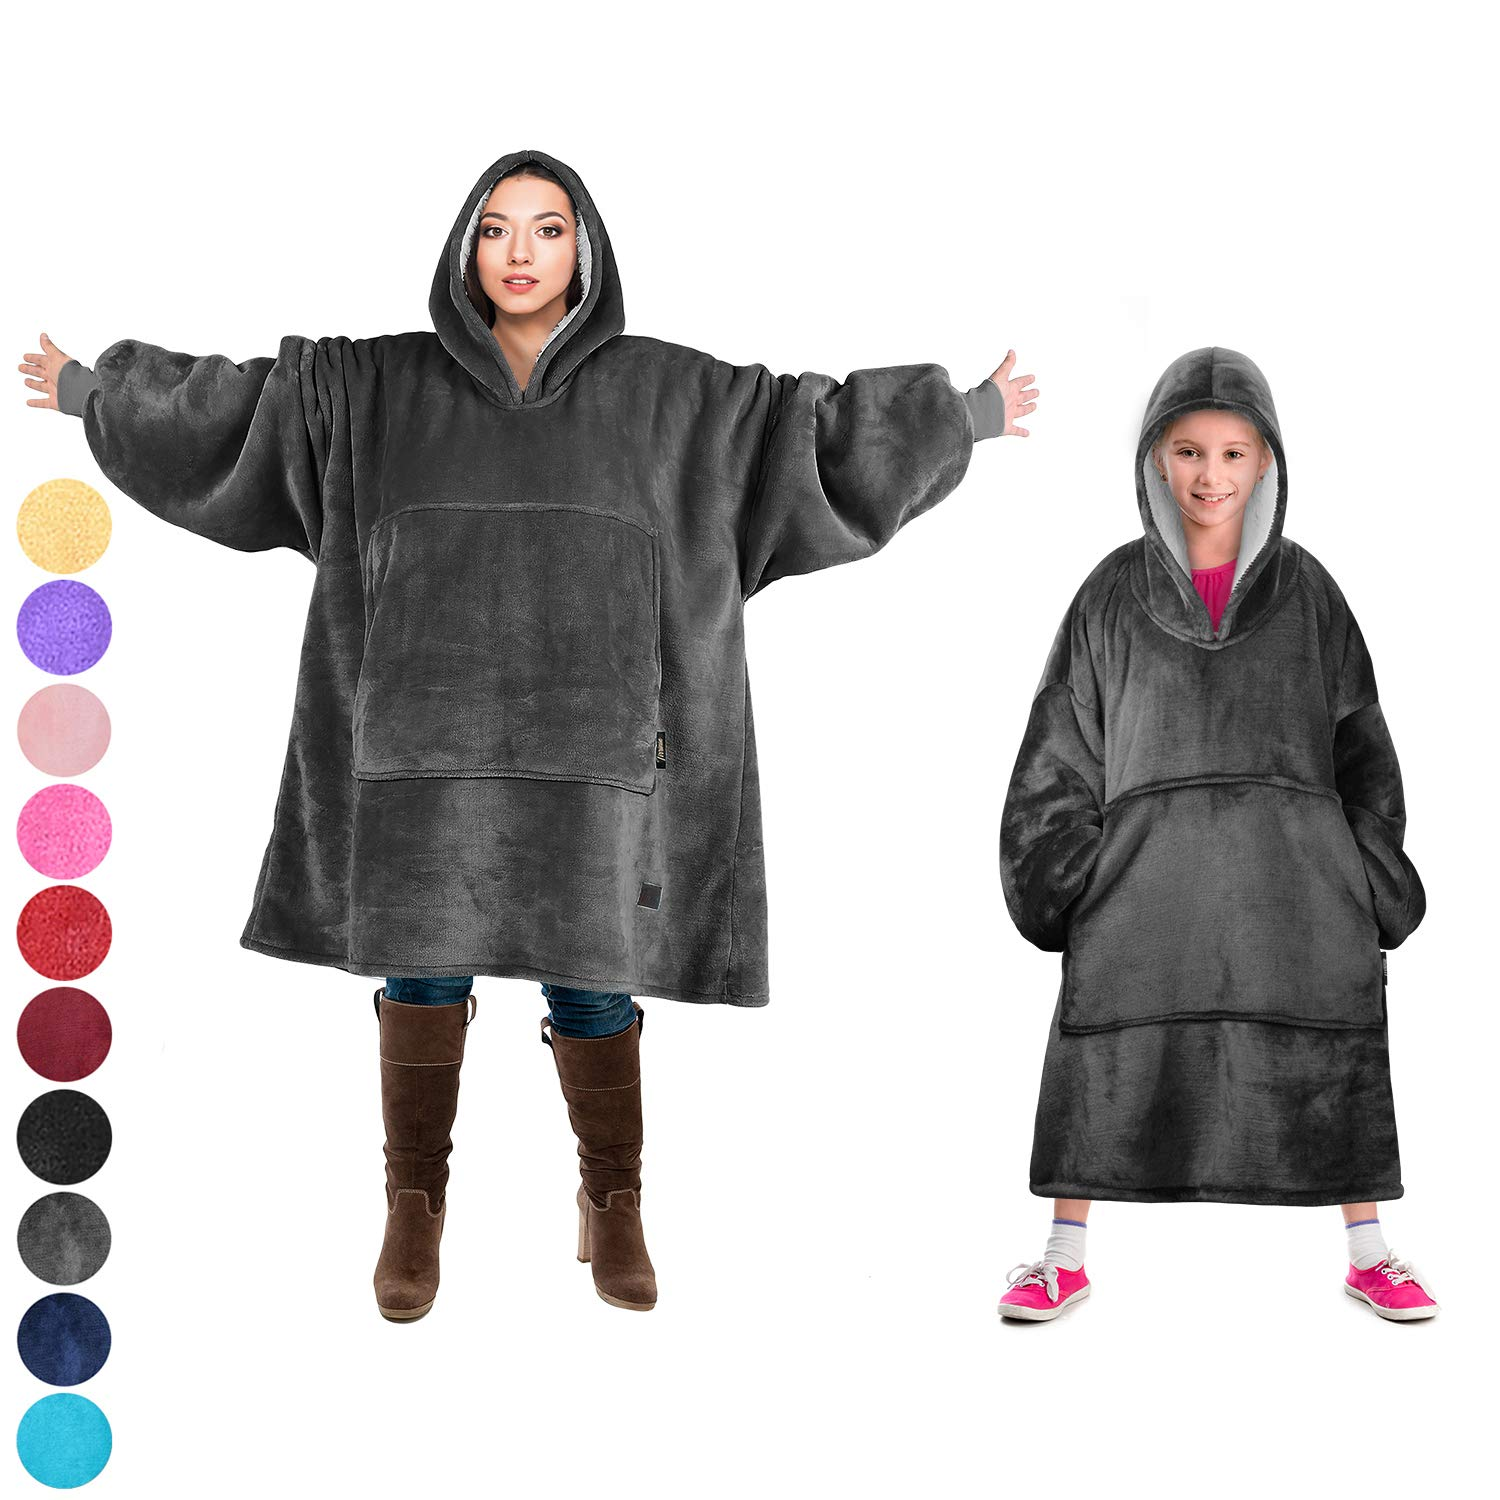 Tirrinia Blanket Sweatshirt, Super Soft Warm Comfortable Sherpa Hoodie with Giant Pocket, for Adults and College Students, Outdoor, Indoor,Reversible, Hood, Oversized, Grey